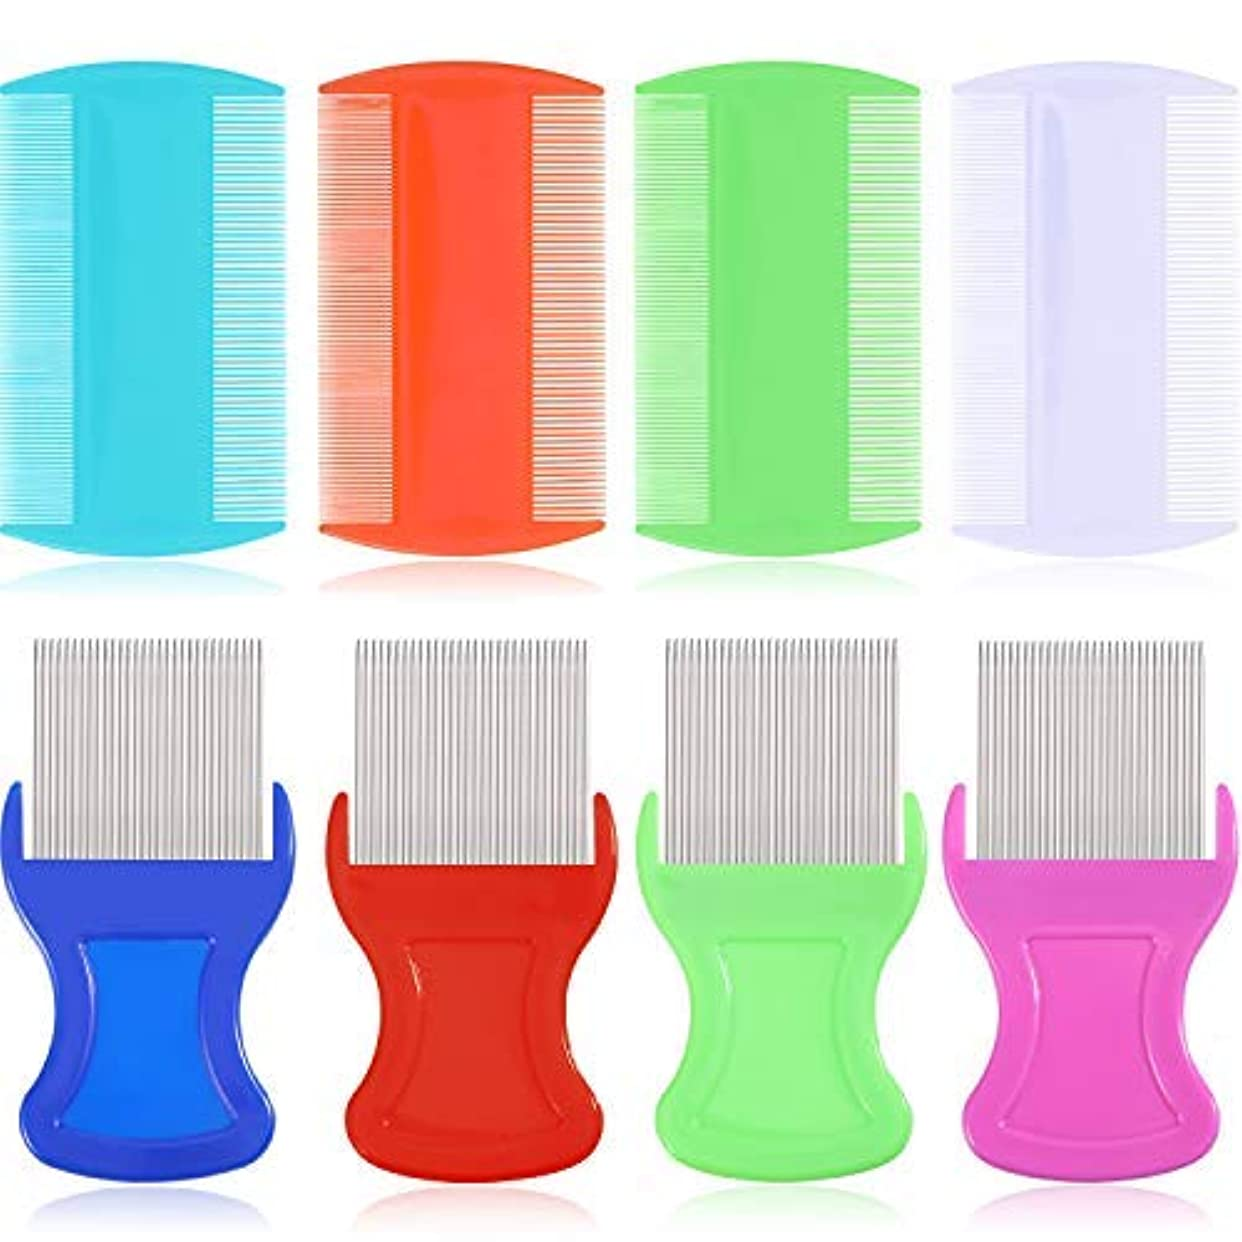 犯人知覚的ベーカリー8 Pieces Flea Lice Comb Lice Removal Combs Include 4 Pieces Nit Remover with Metal Teeth and 4 Pieces Double Sided...